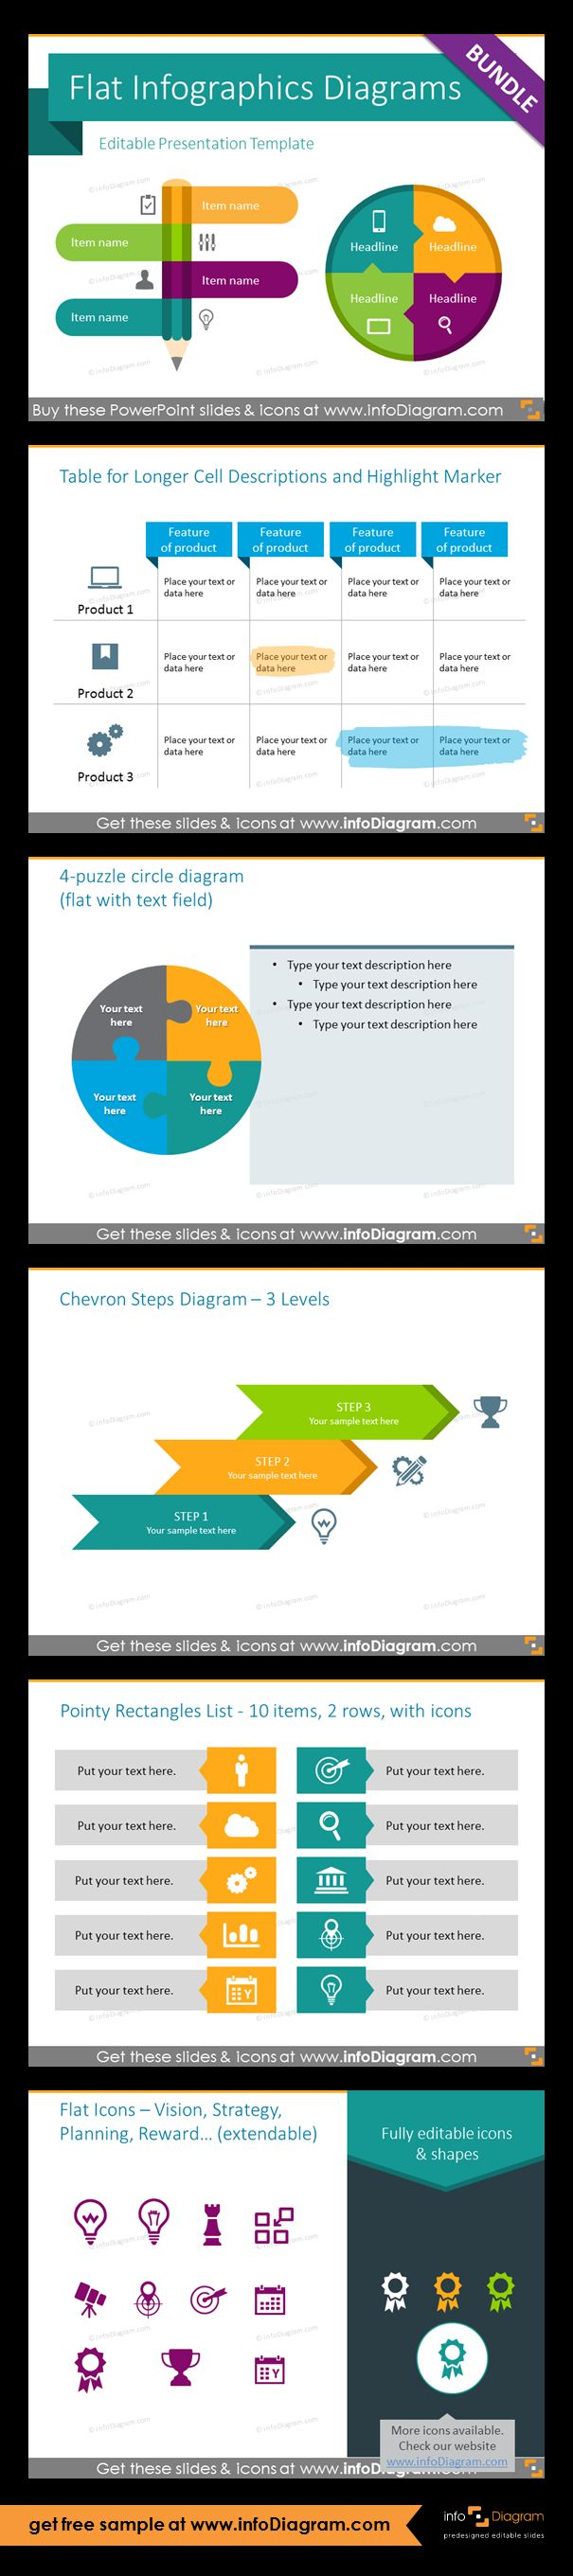 Infographics PowerPoint templates with modern flat design editable diagrams and vector icons. Fully editable style, size and colors. Table template for longer cell description and marker, 4-puzzle circle diagram, chevron staircase diagram for 3 elements, pointy rectangles list for 10 items in two colors, vision,  index of strategy, planning and reward flat pictograms.